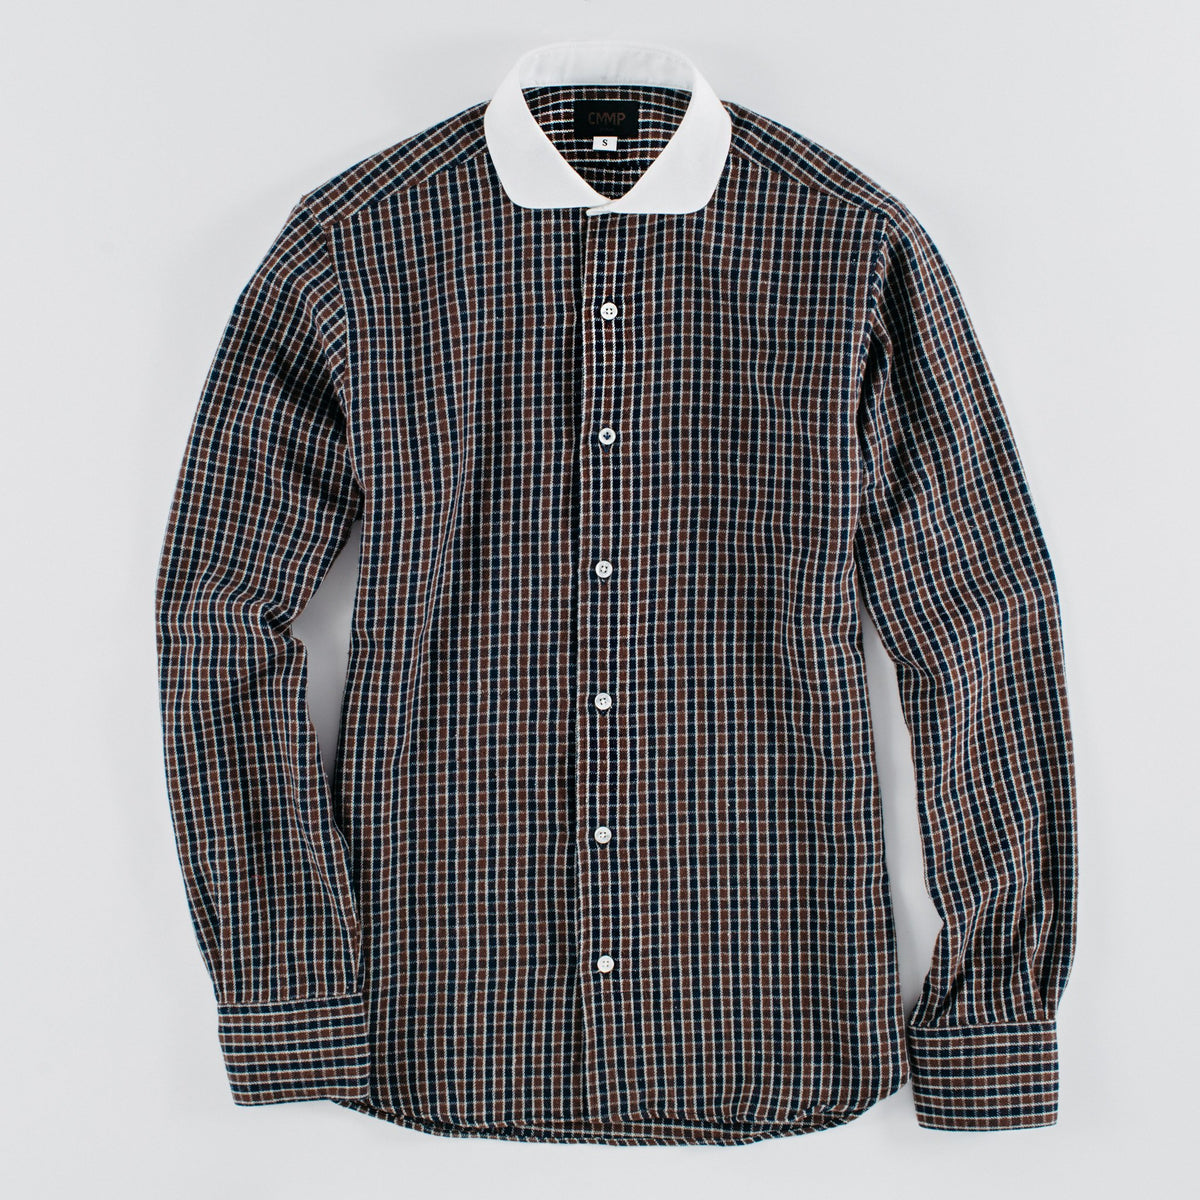 Blue/Brown Gingham Shirt